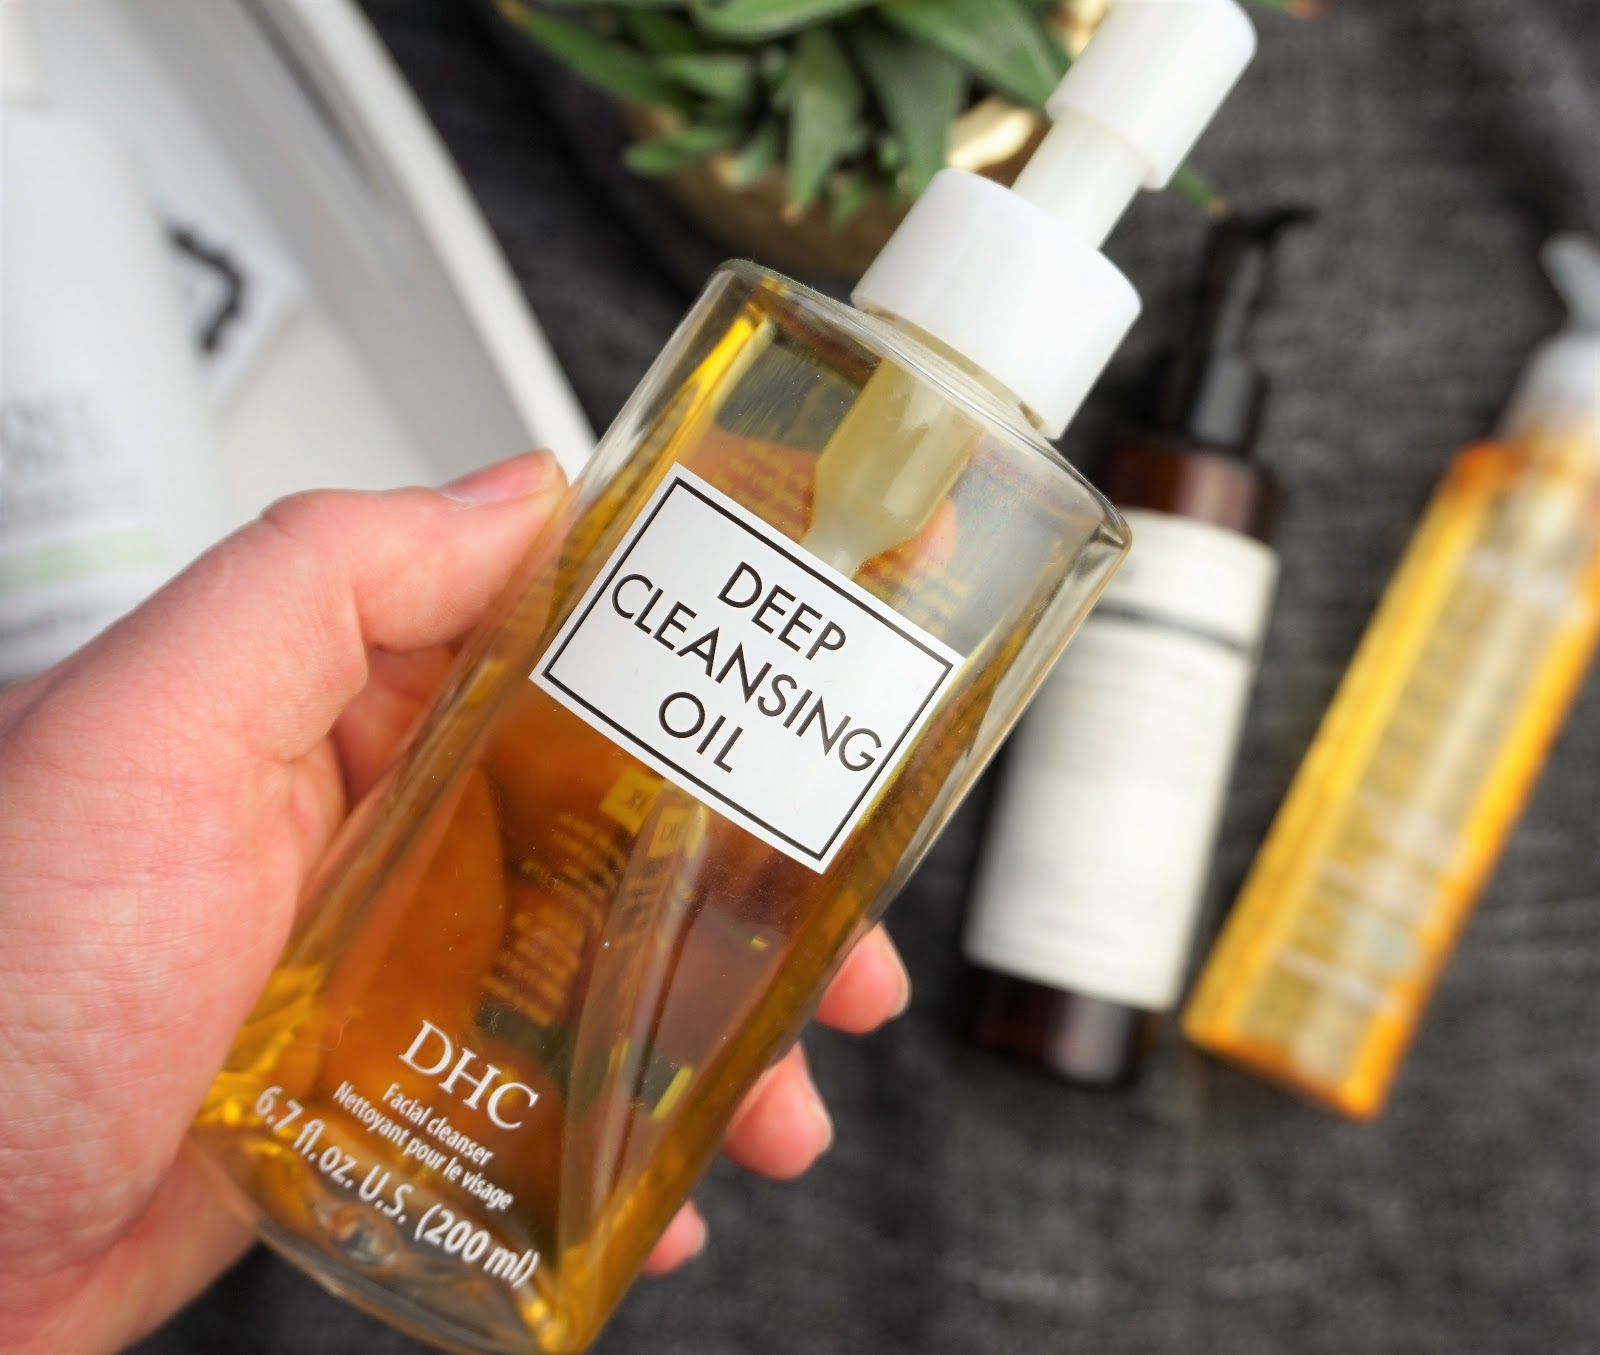 5 Cleansing Oils To try www.eyelinerflicks.com